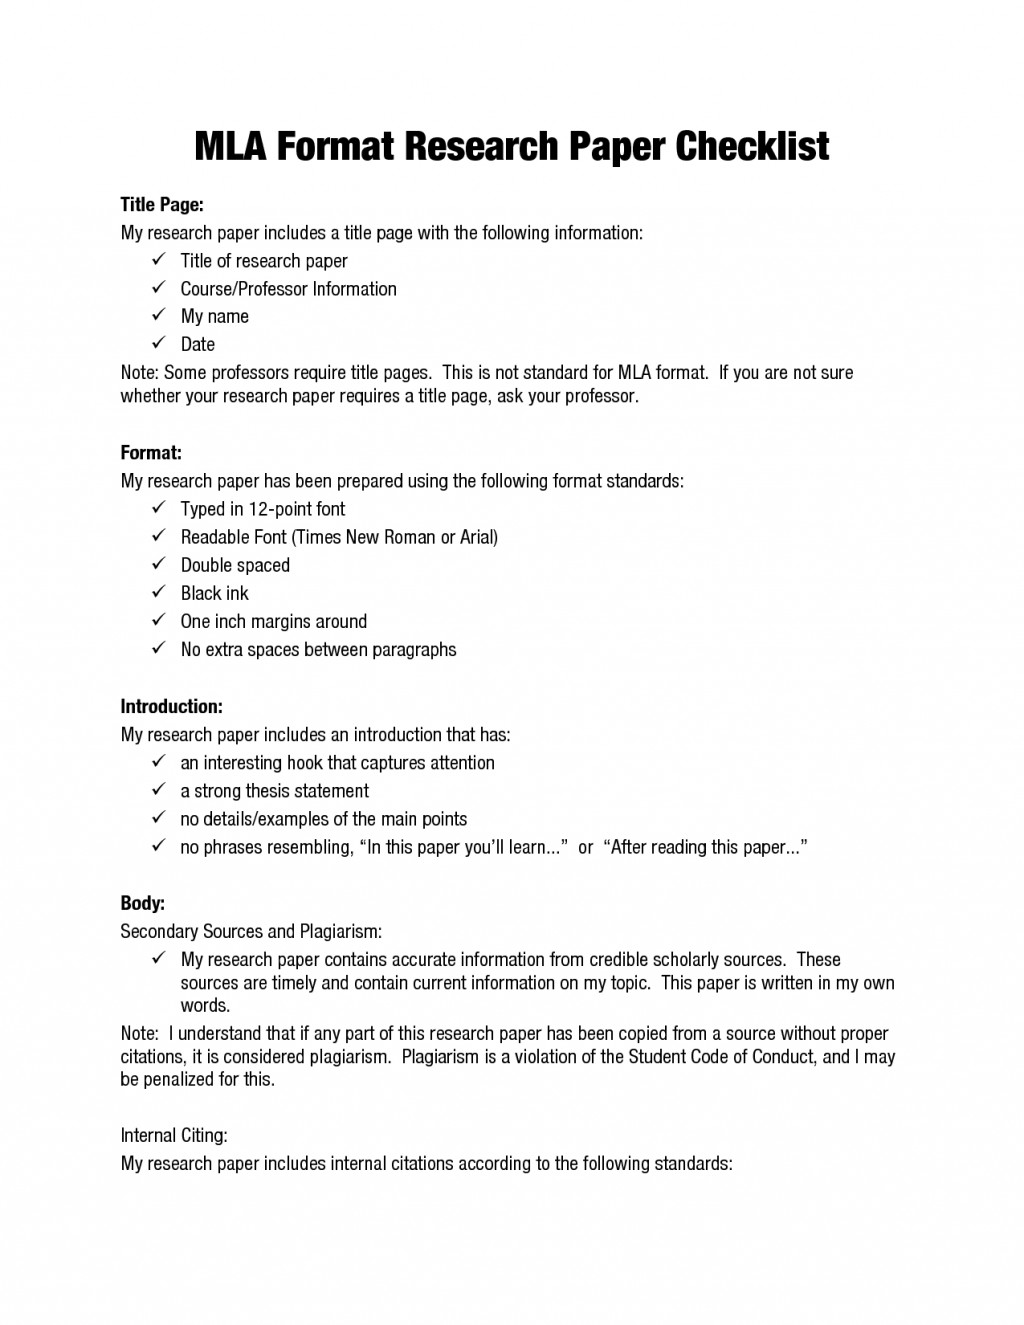 001 Credible Sources For High School Research Paper Singular Large